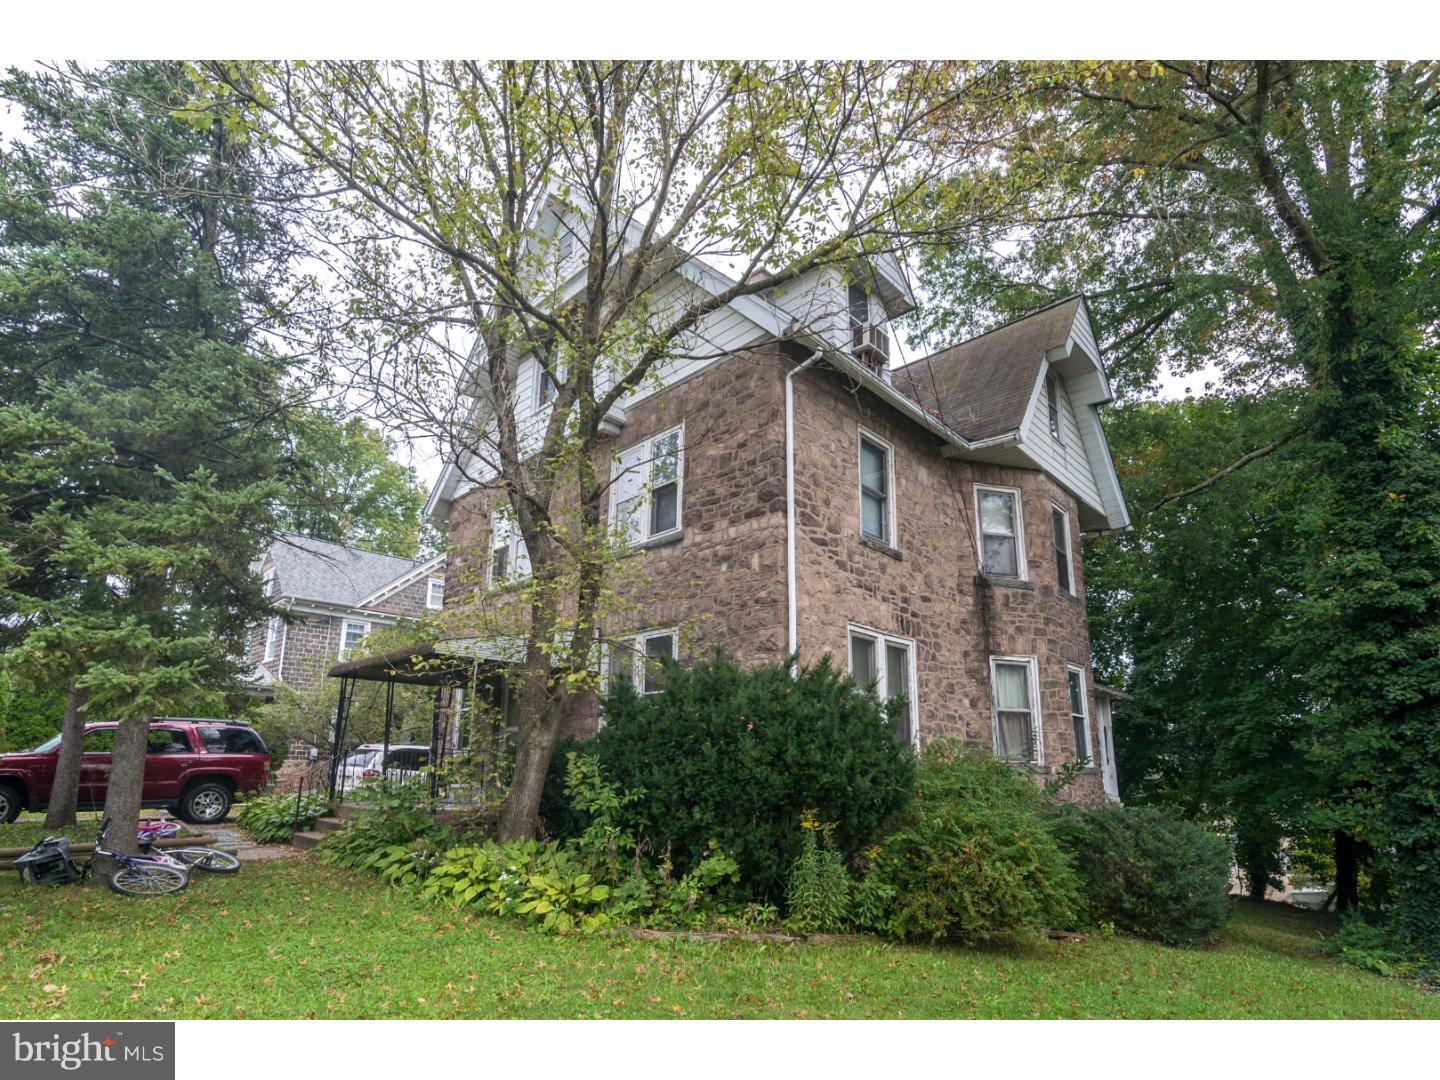 107 SUMMIT AVENUE, FORT WASHINGTON, PA 19034